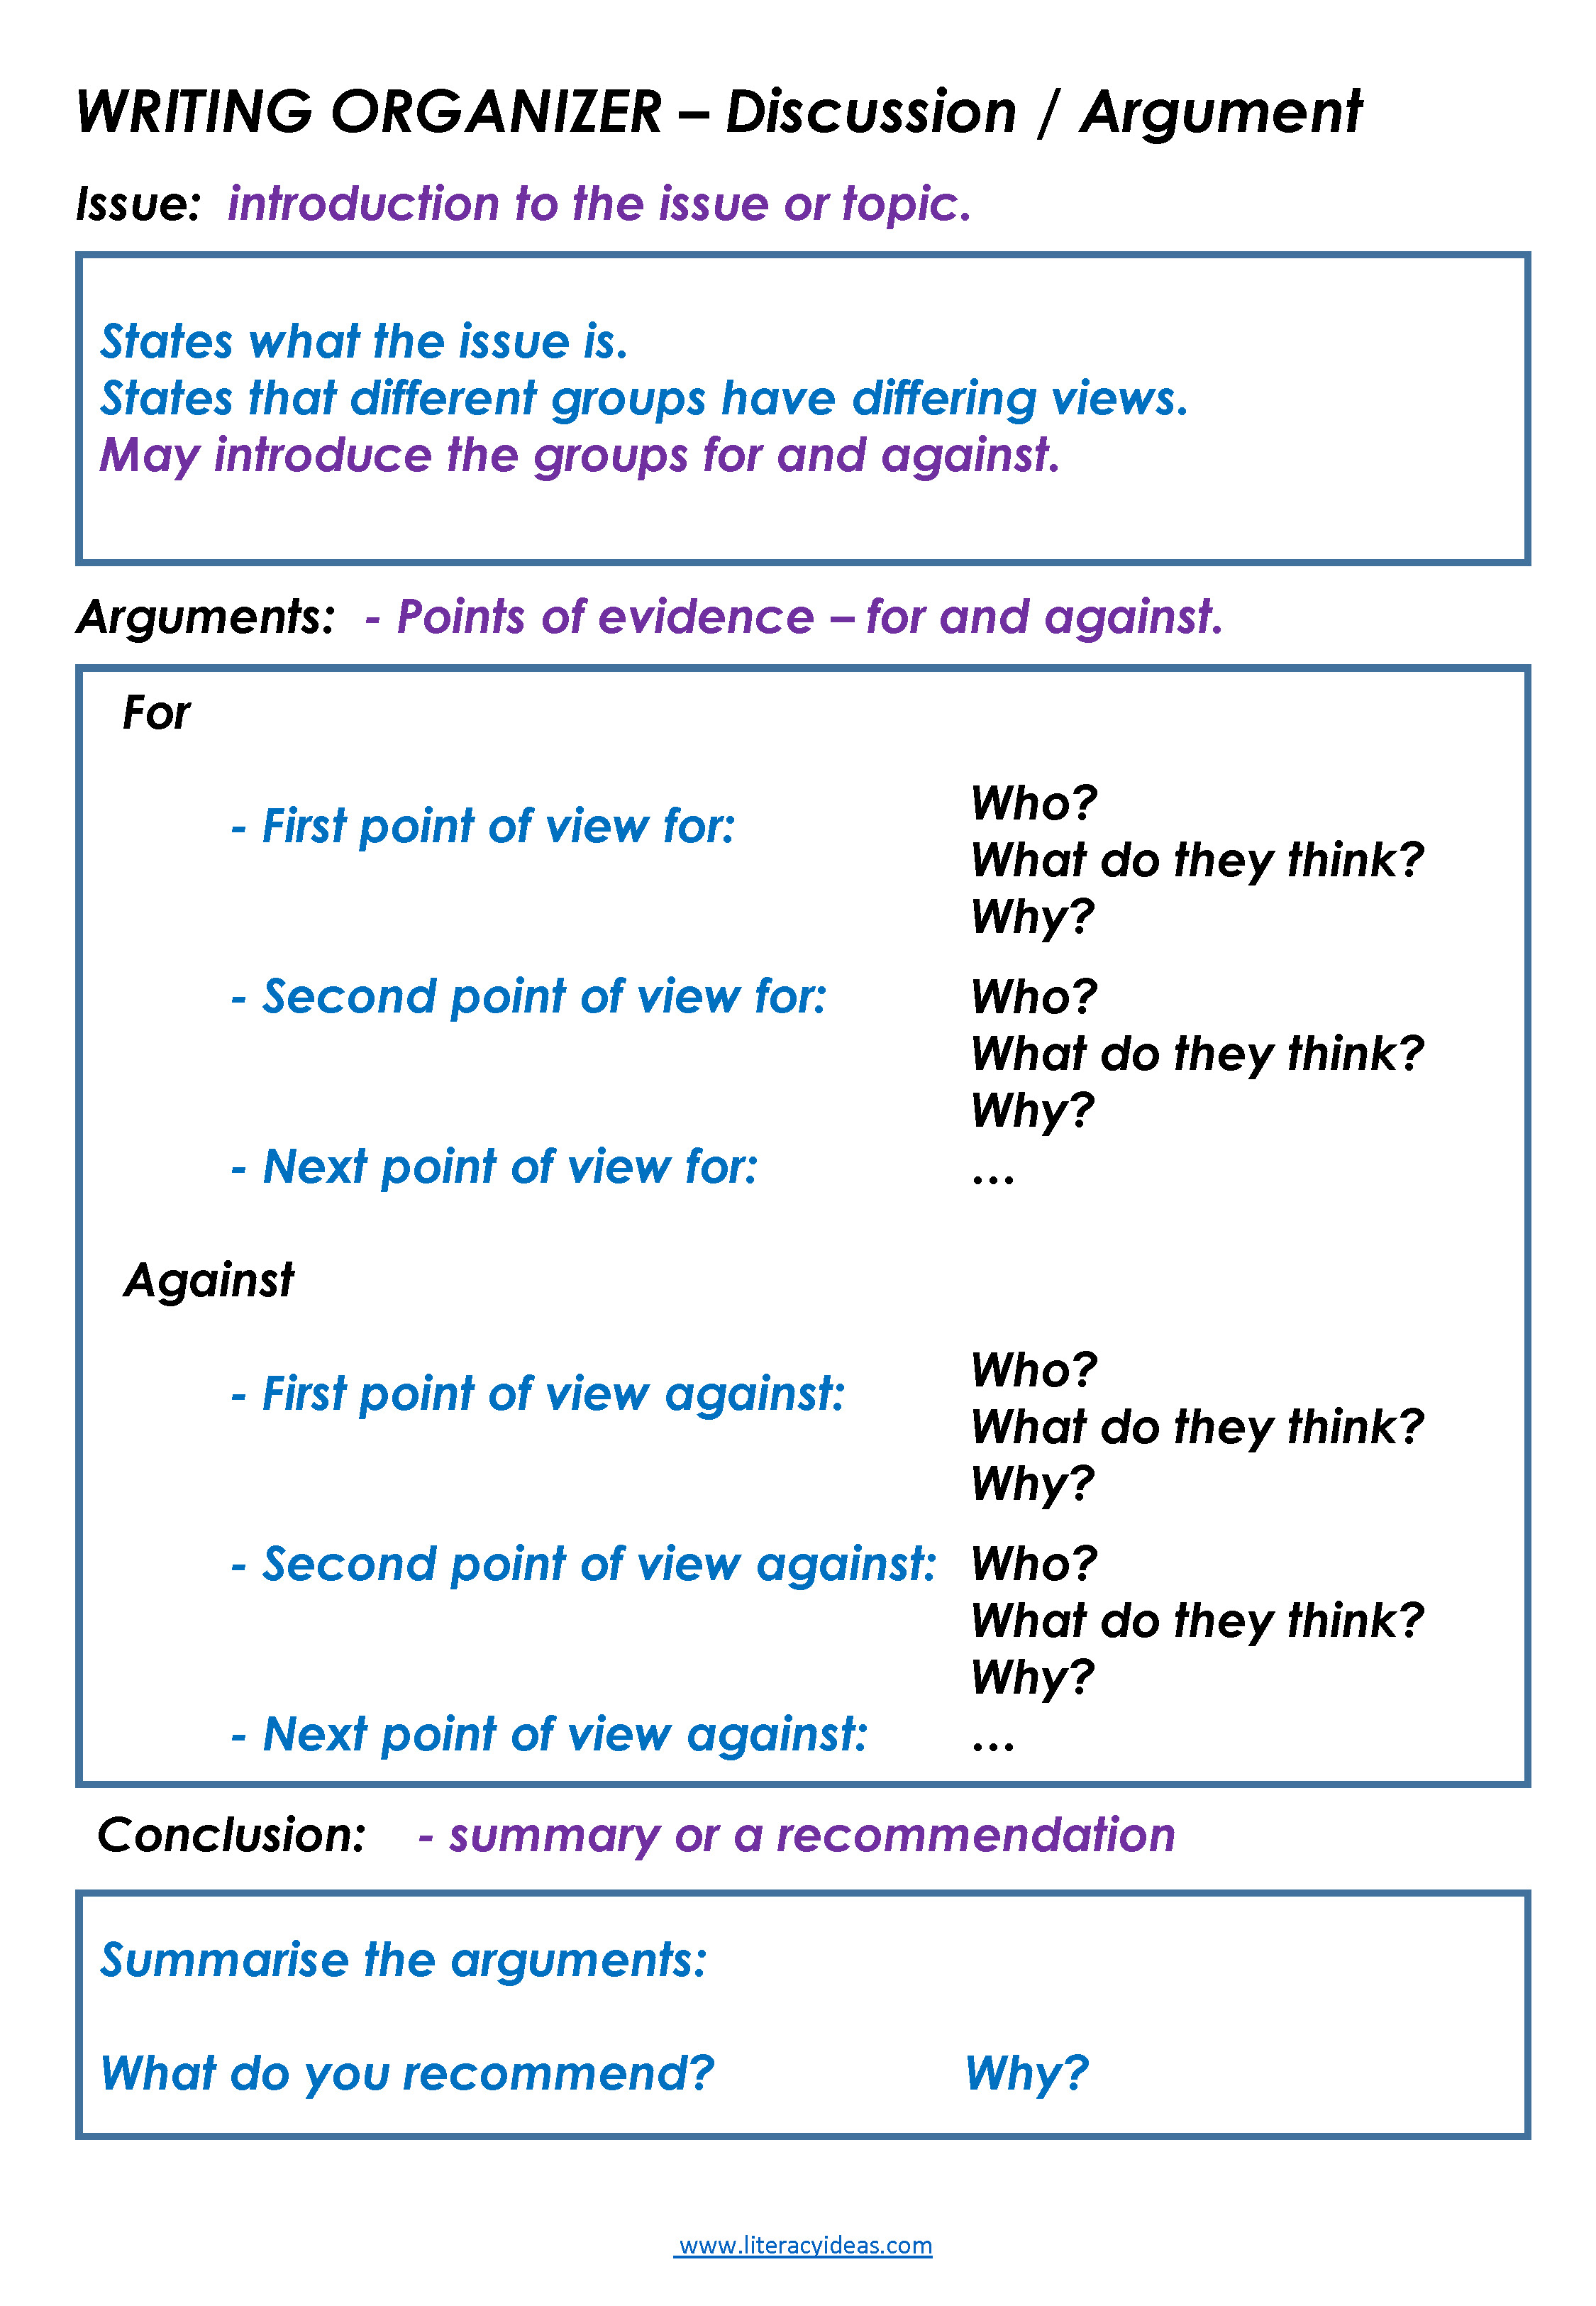 How To Write An Excellent Discussion Argument — Literacy